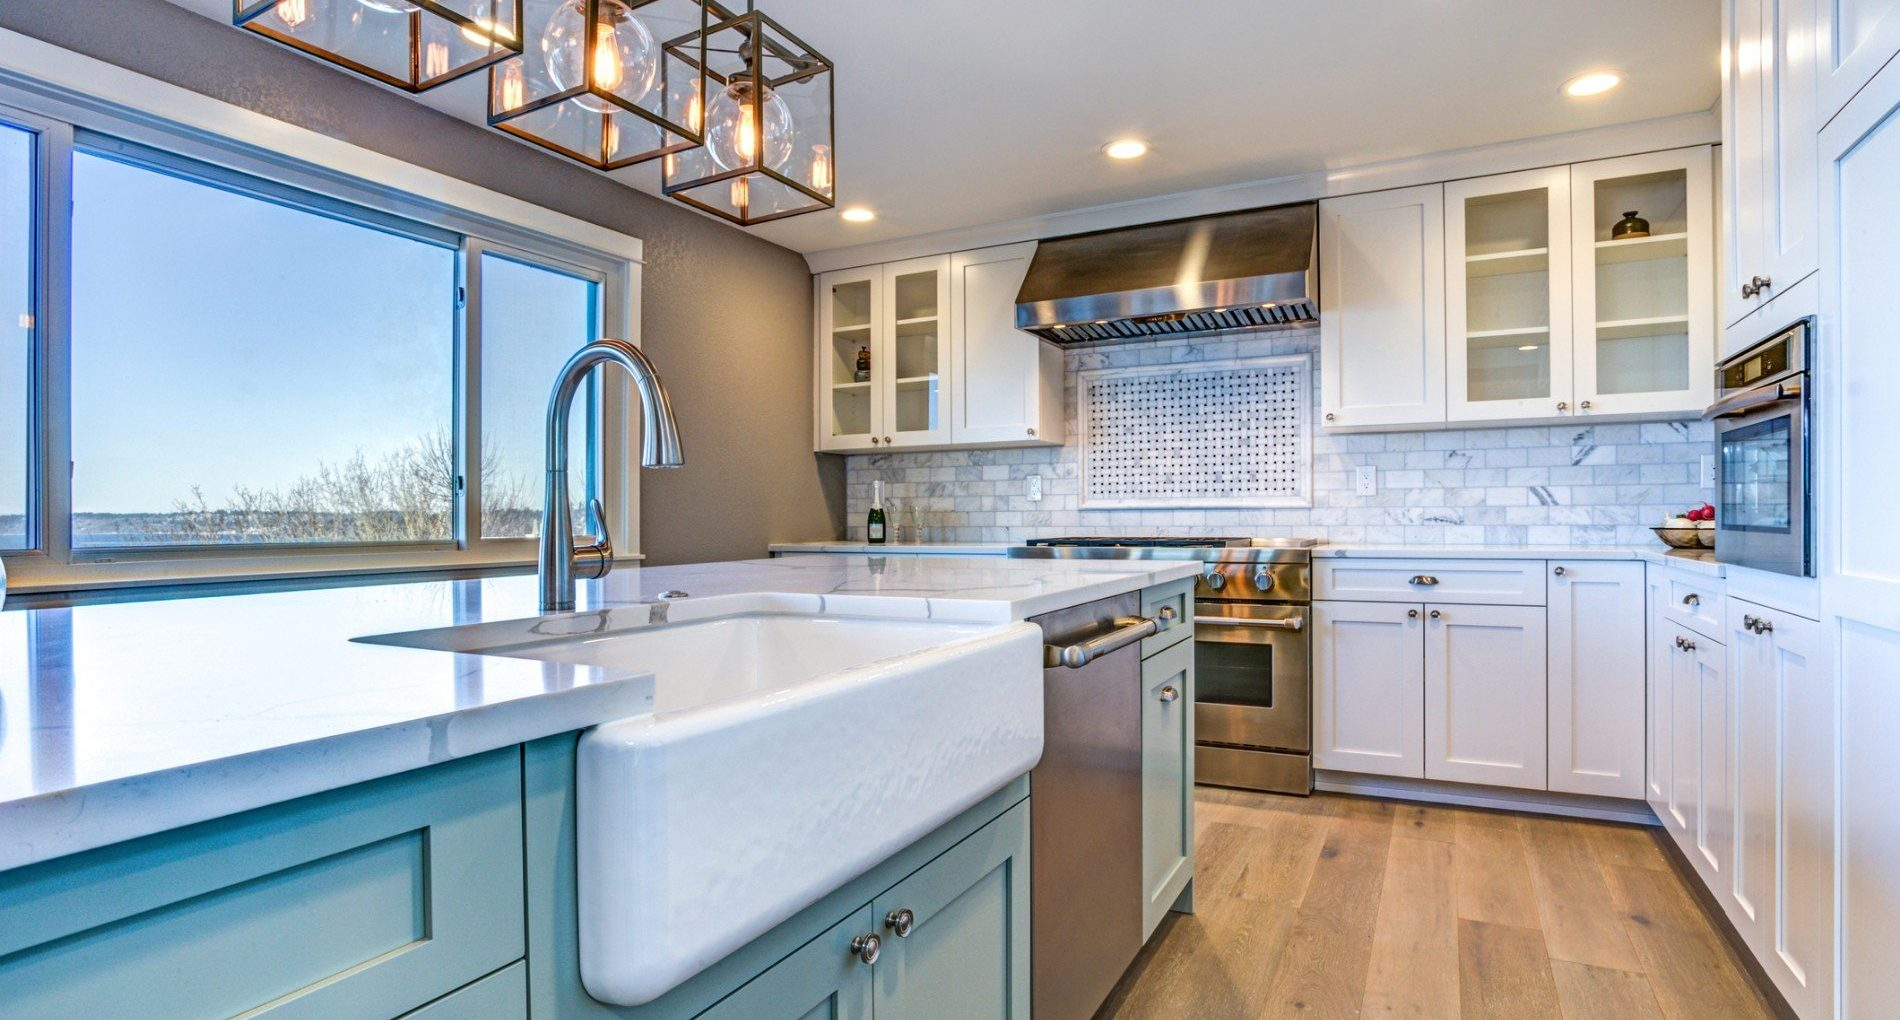 Kitchen Design and Exciting Color Choices